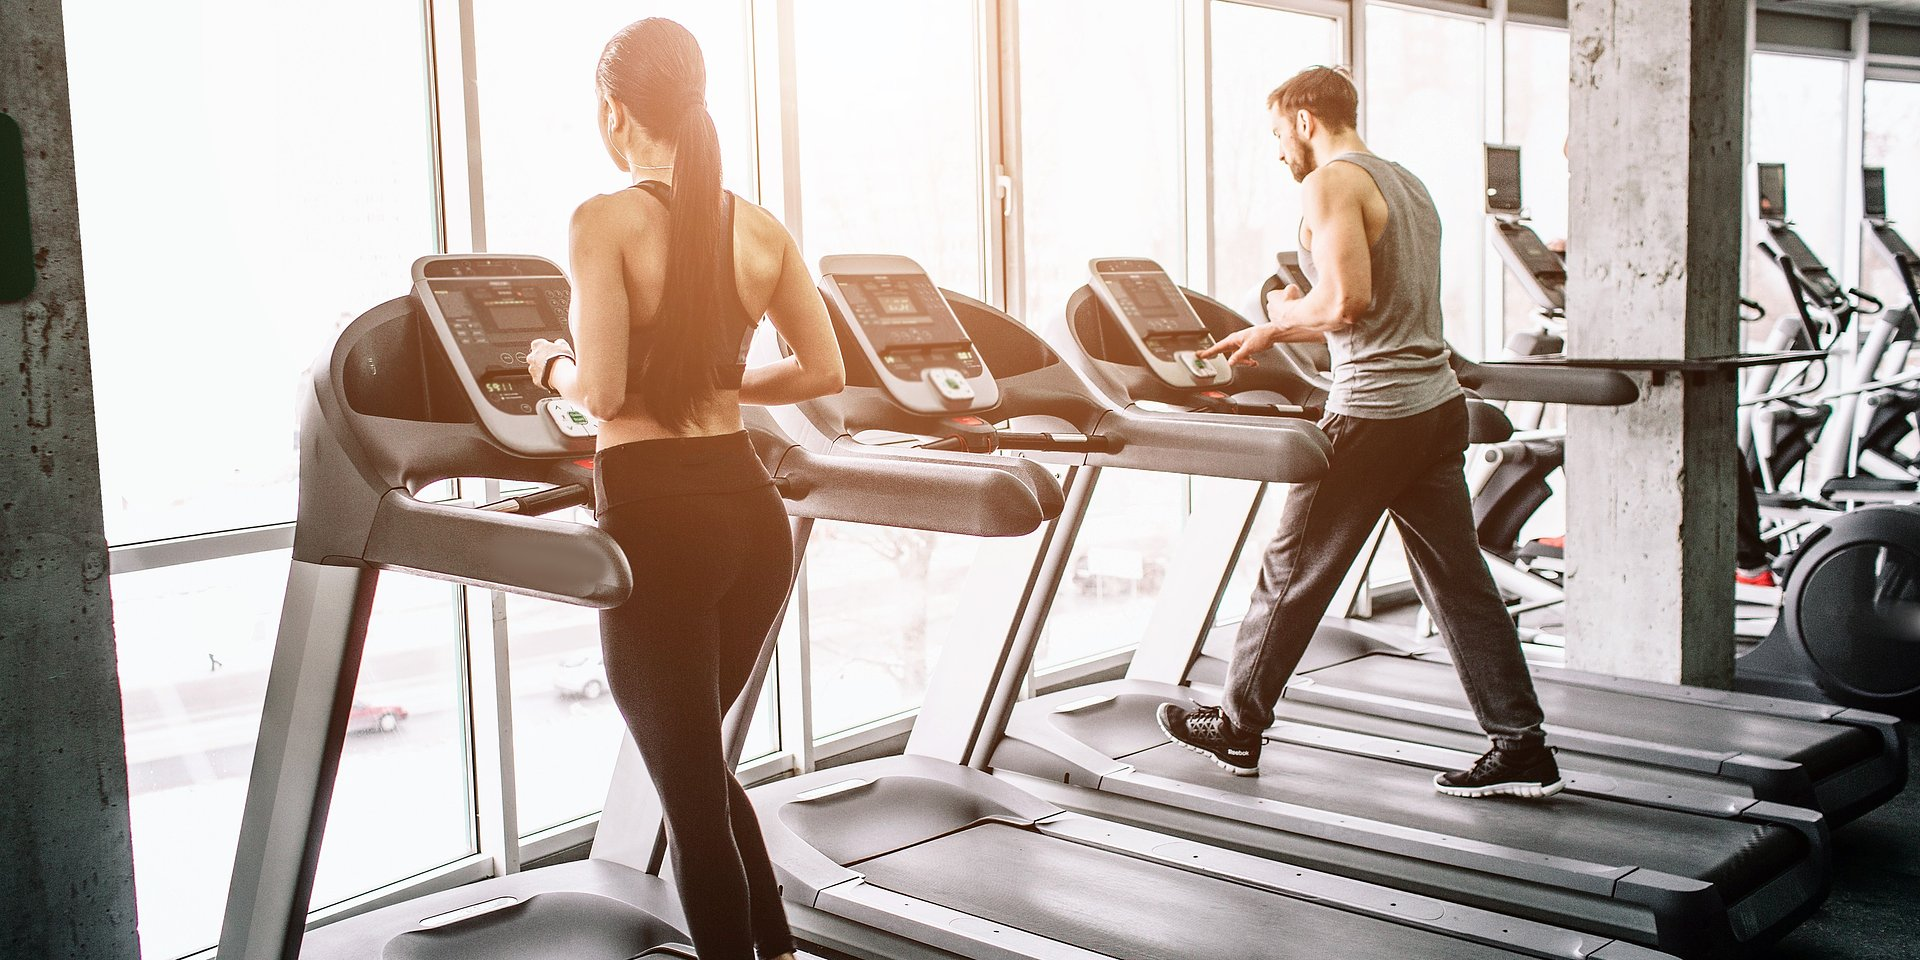 The fitness industry opens on May 28 and focuses on supporting the health of Poles after many months of lockdown